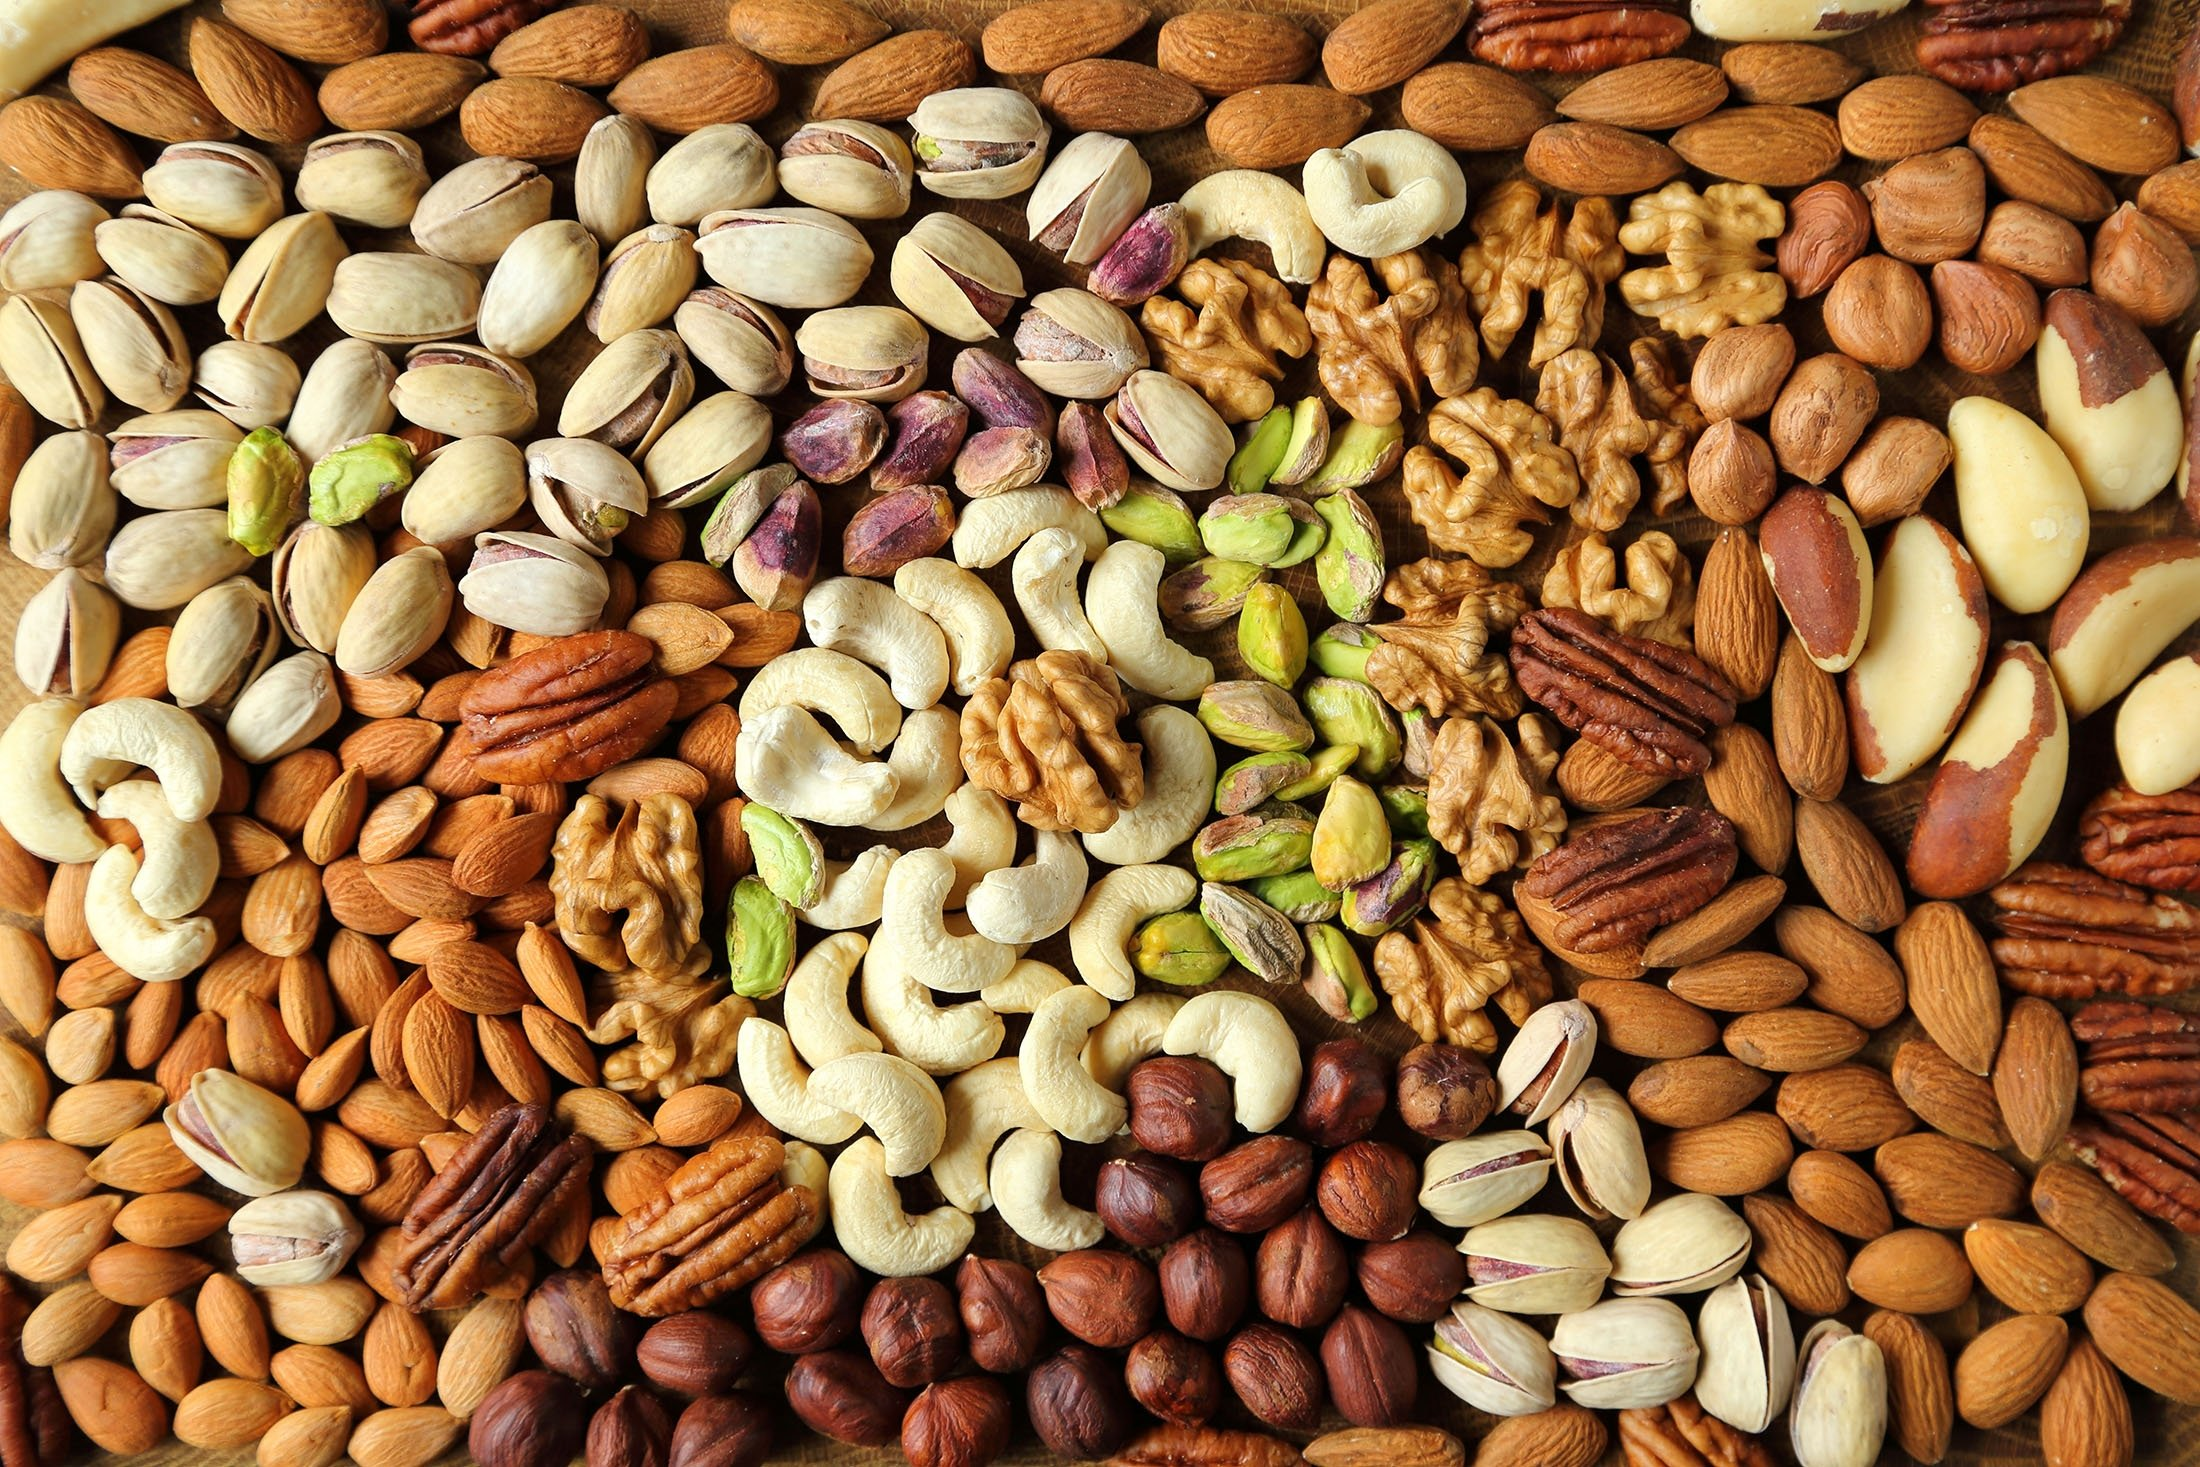 Nuts contain vitamin E and healthy fats, which help to boost mental performance. (Shutterstock Photo)